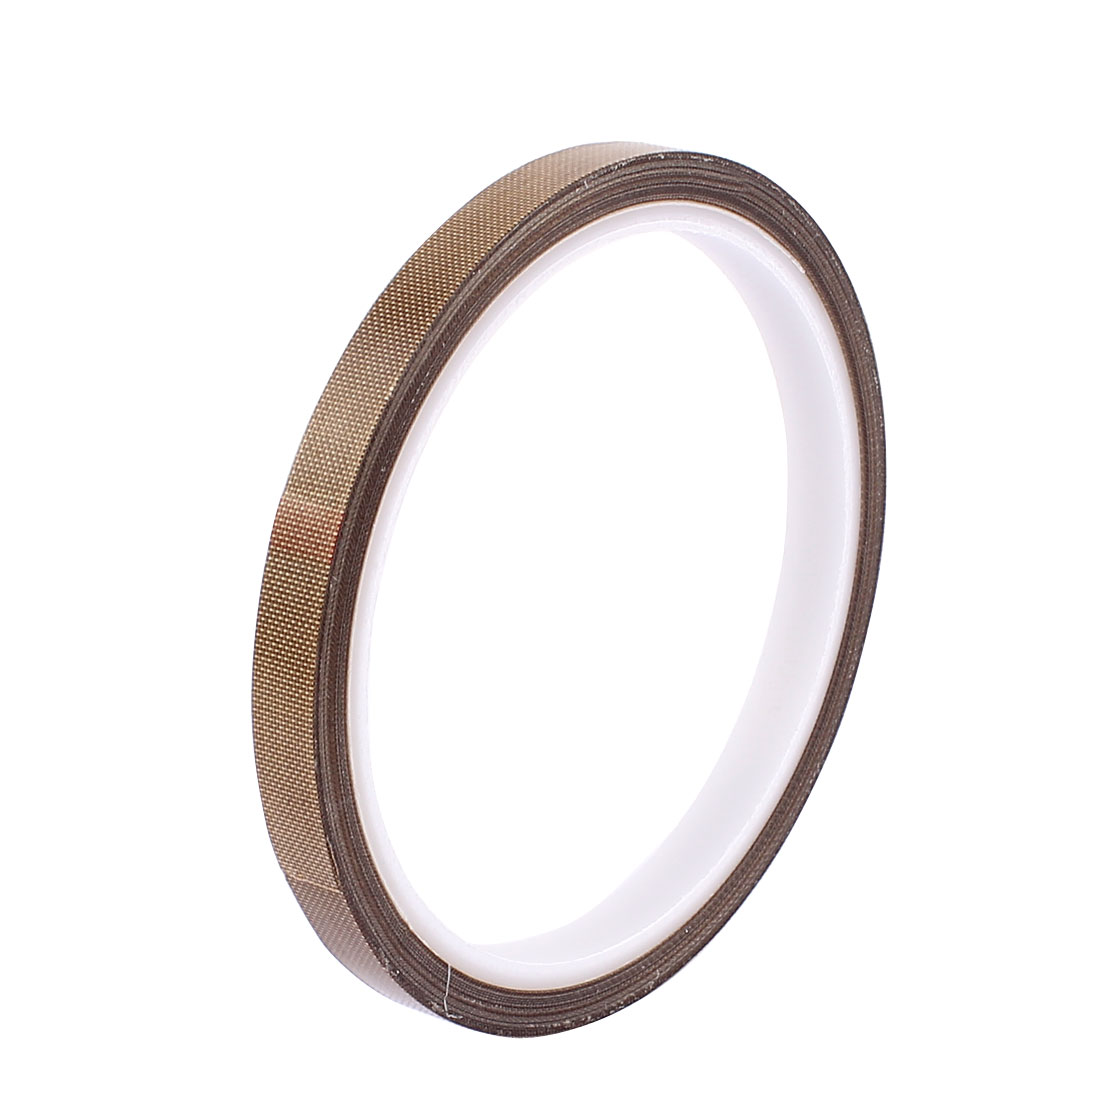 8mm Width 10M Long 0.13mm Thickness Nonstick High Temperature PTFE Adhesive Tape